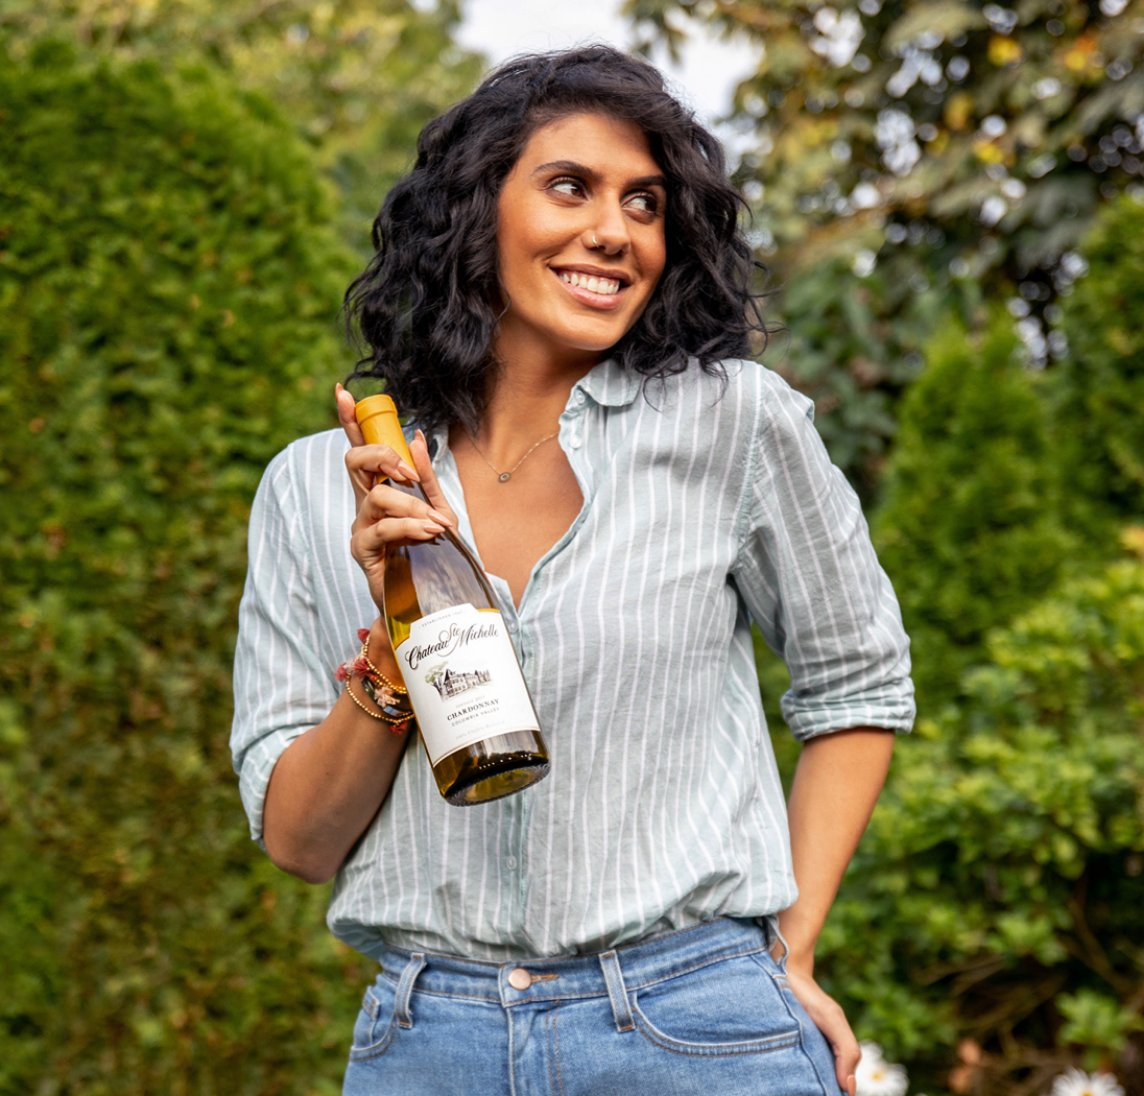 A woman walking toward camera and holding a bottle of wine